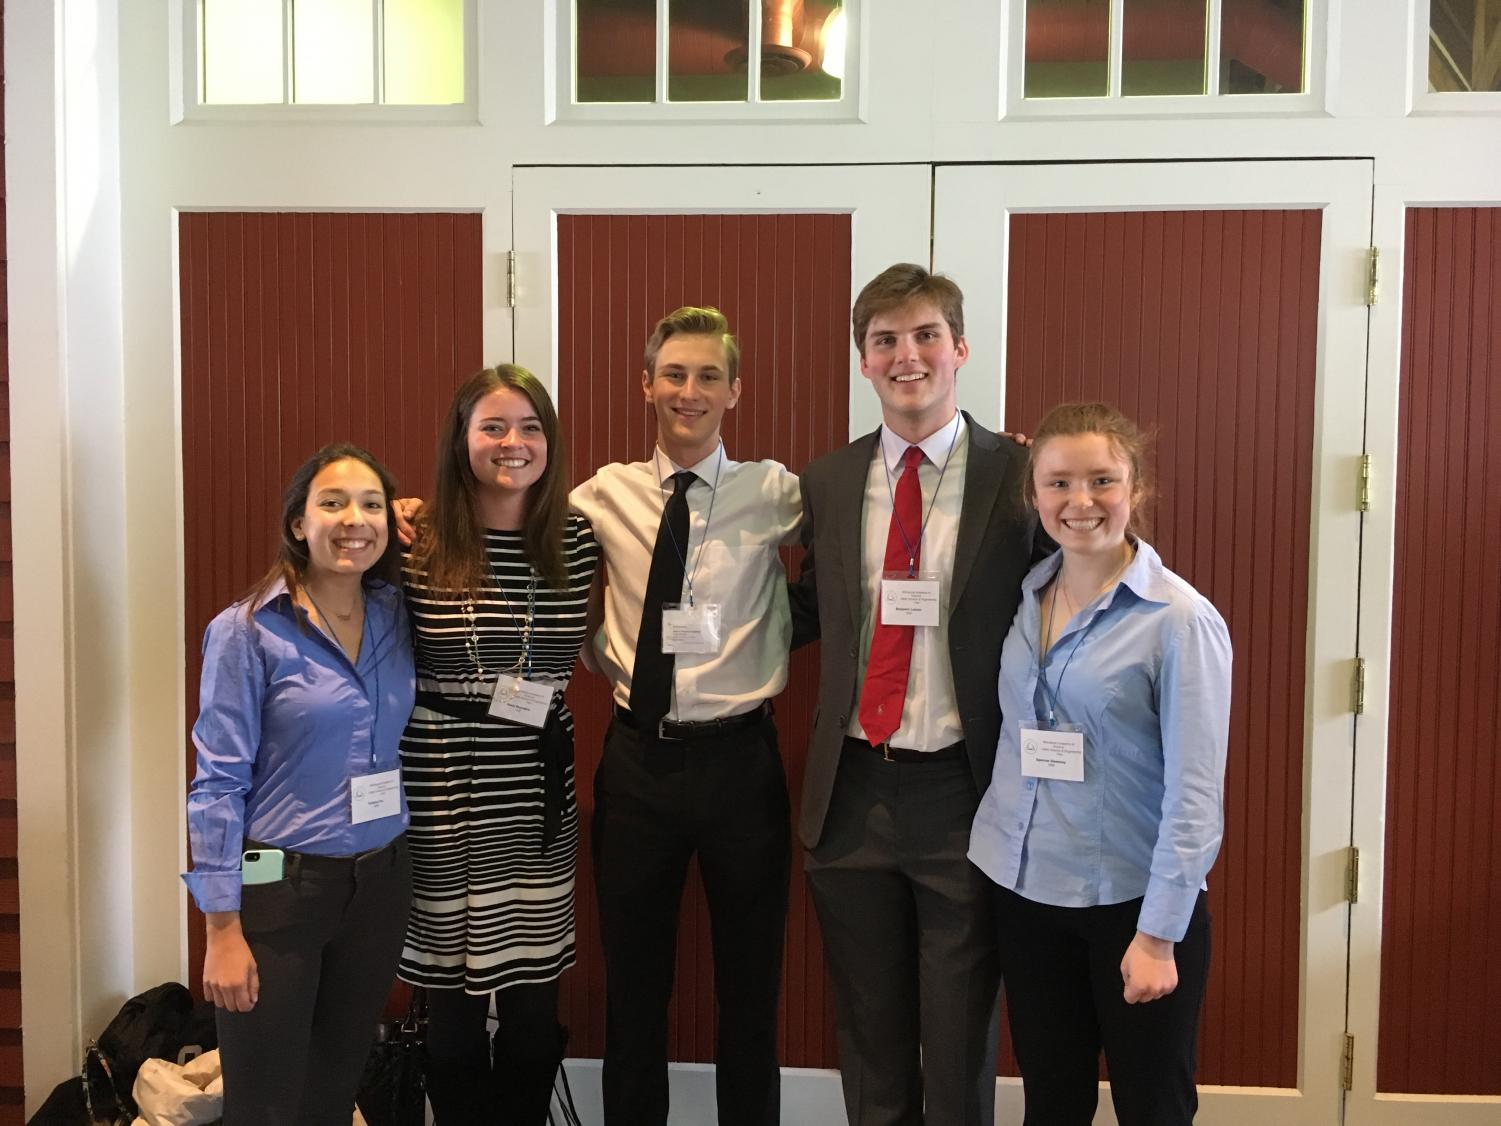 BSM sent five seniors, Felisha Fox, Alexa Reynders, Mikey Pupel, Ben Larson, and Spencer Sweeney, to the State Science and Engineering Fair. There they competed for a chance to qualify for the Intel ISEF.